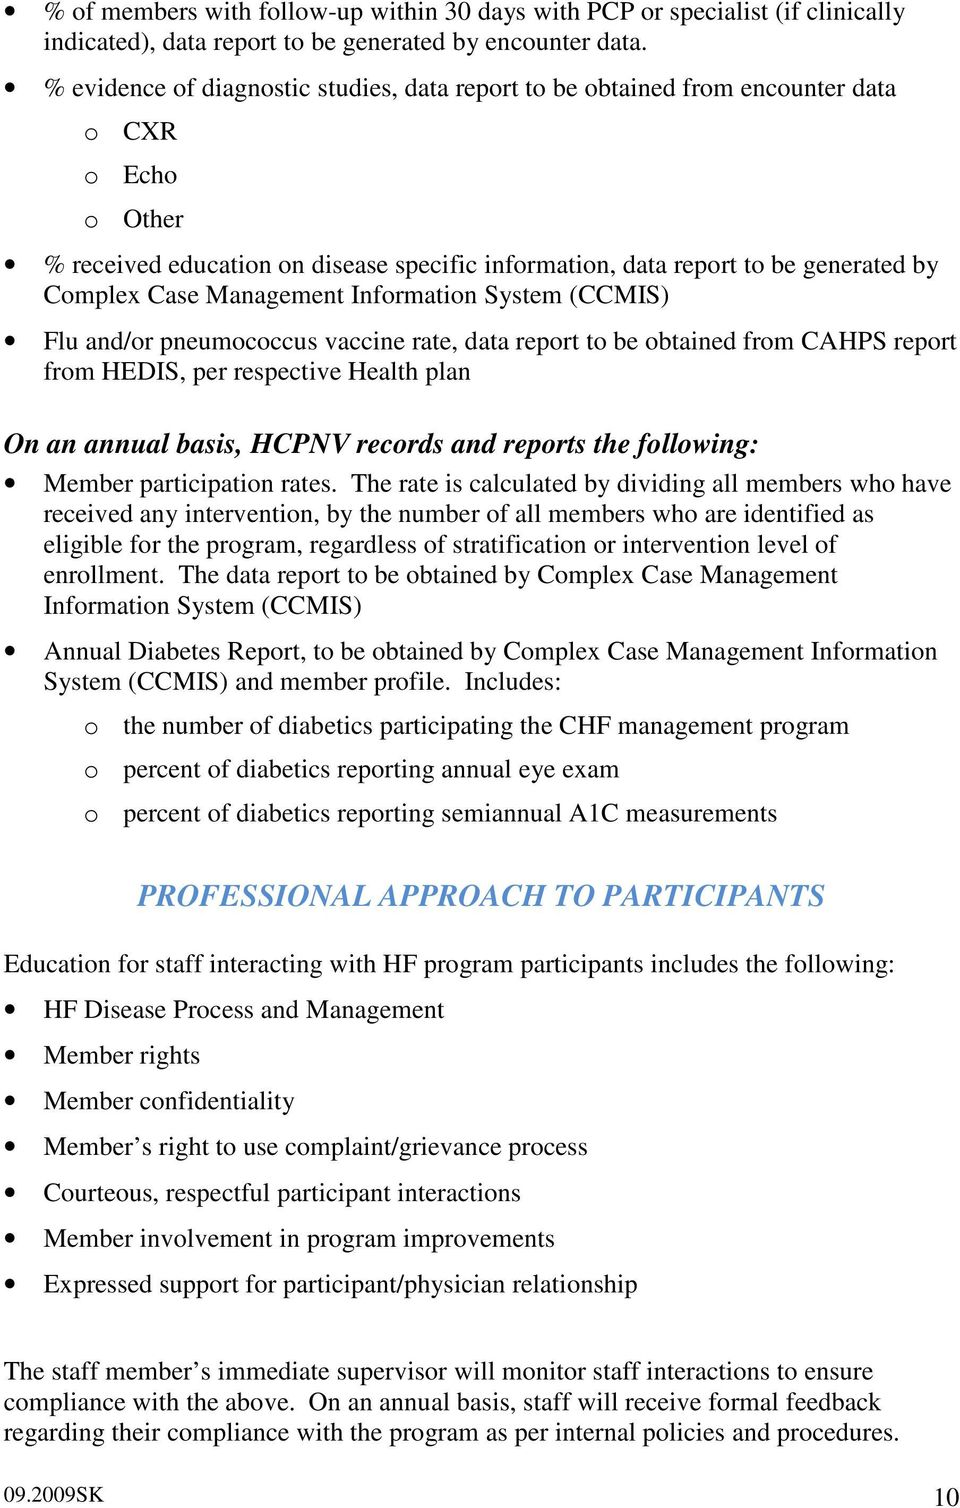 Management Information System (CCMIS) Flu and/or pneumococcus vaccine rate, data report to be obtained from CAHPS report from HEDIS, per respective Health plan On an annual basis, HCPNV records and